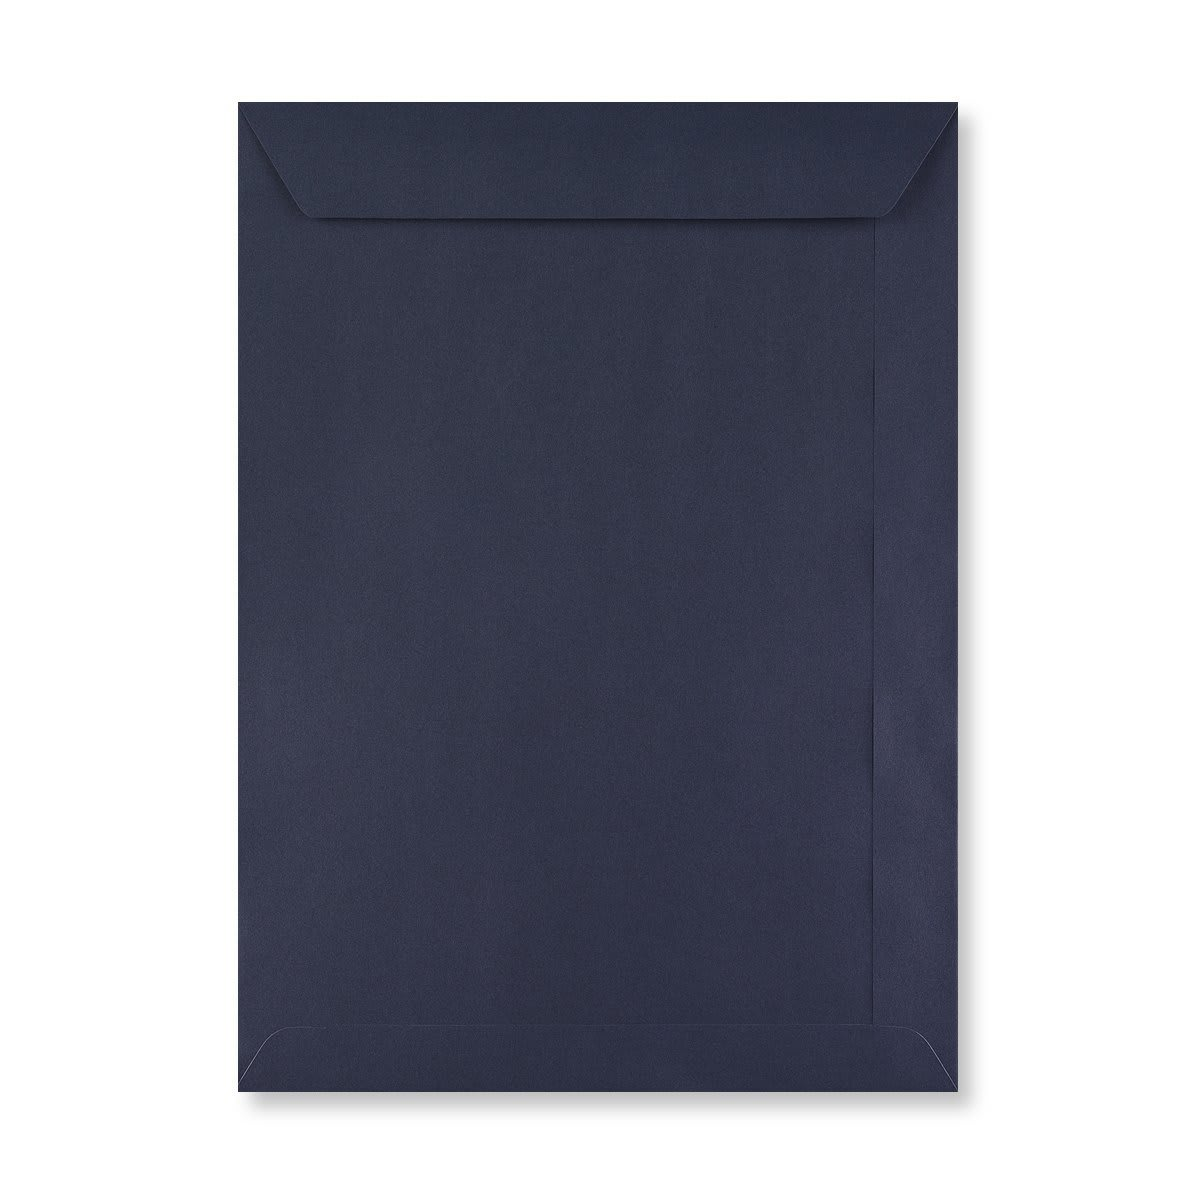 C4 DARK BLUE PEEL AND SEAL ENVELOPES